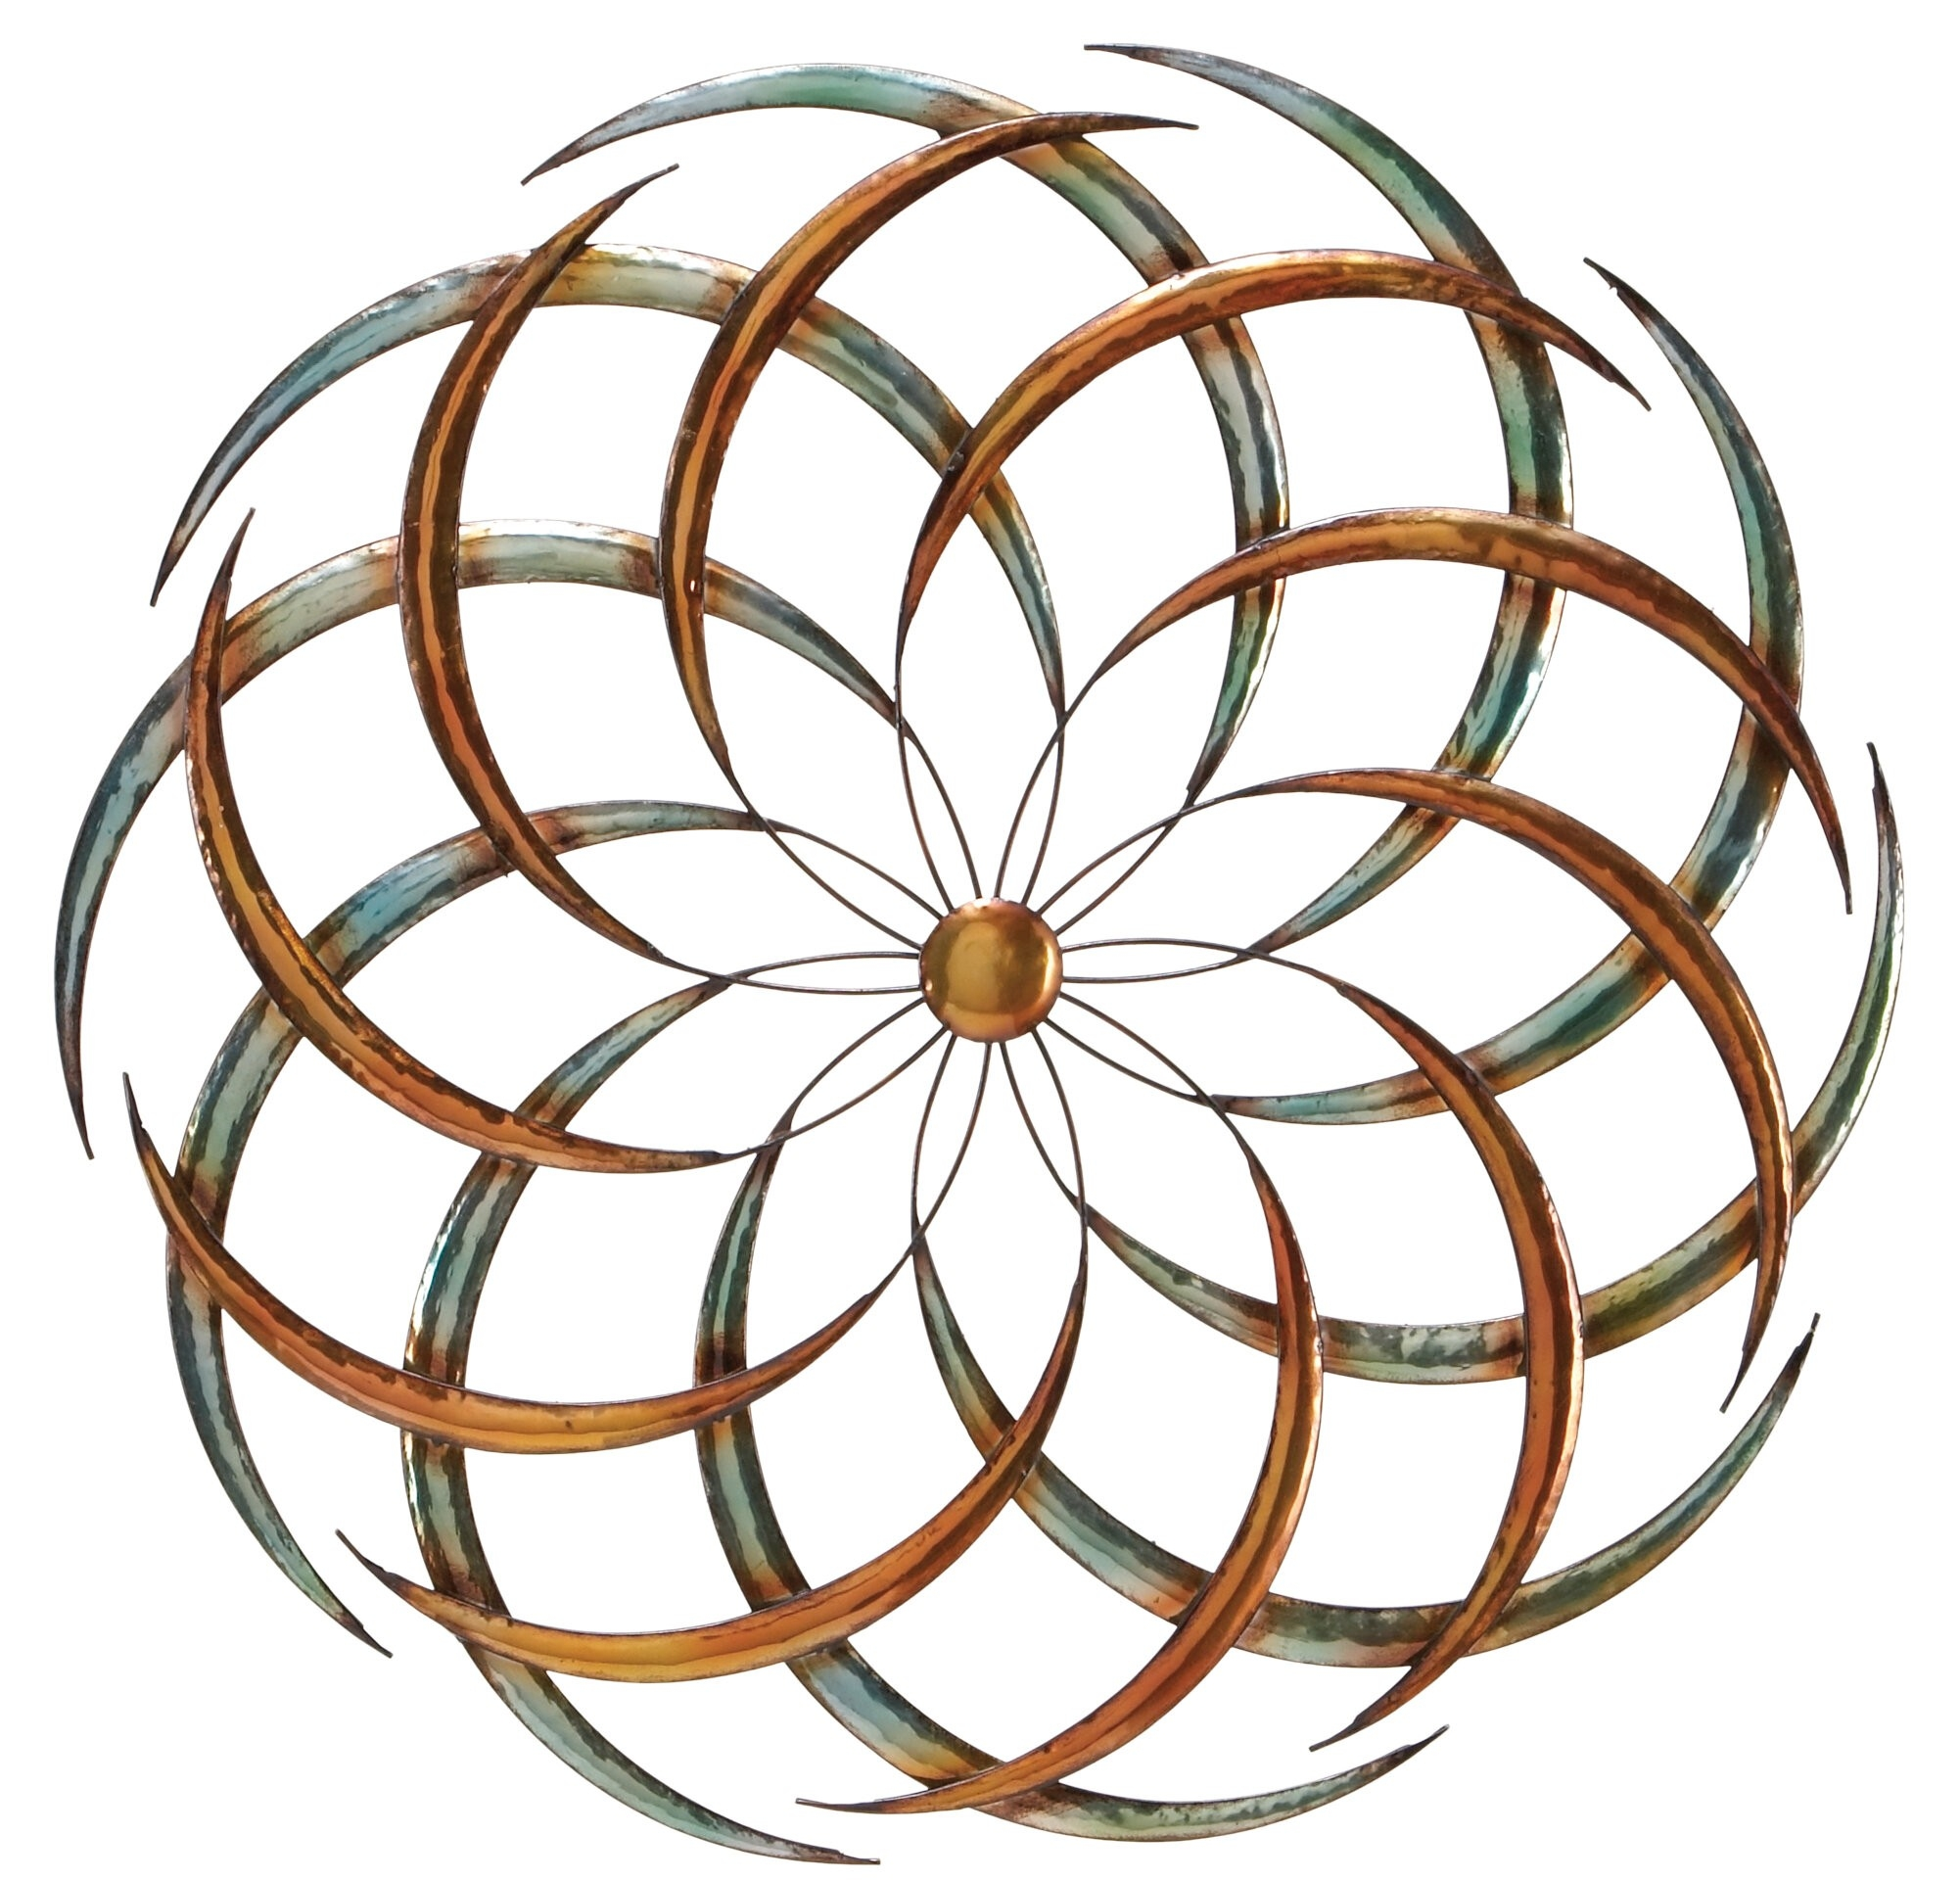 Image of: Large Round Metal Wall Art Ideas On Foter